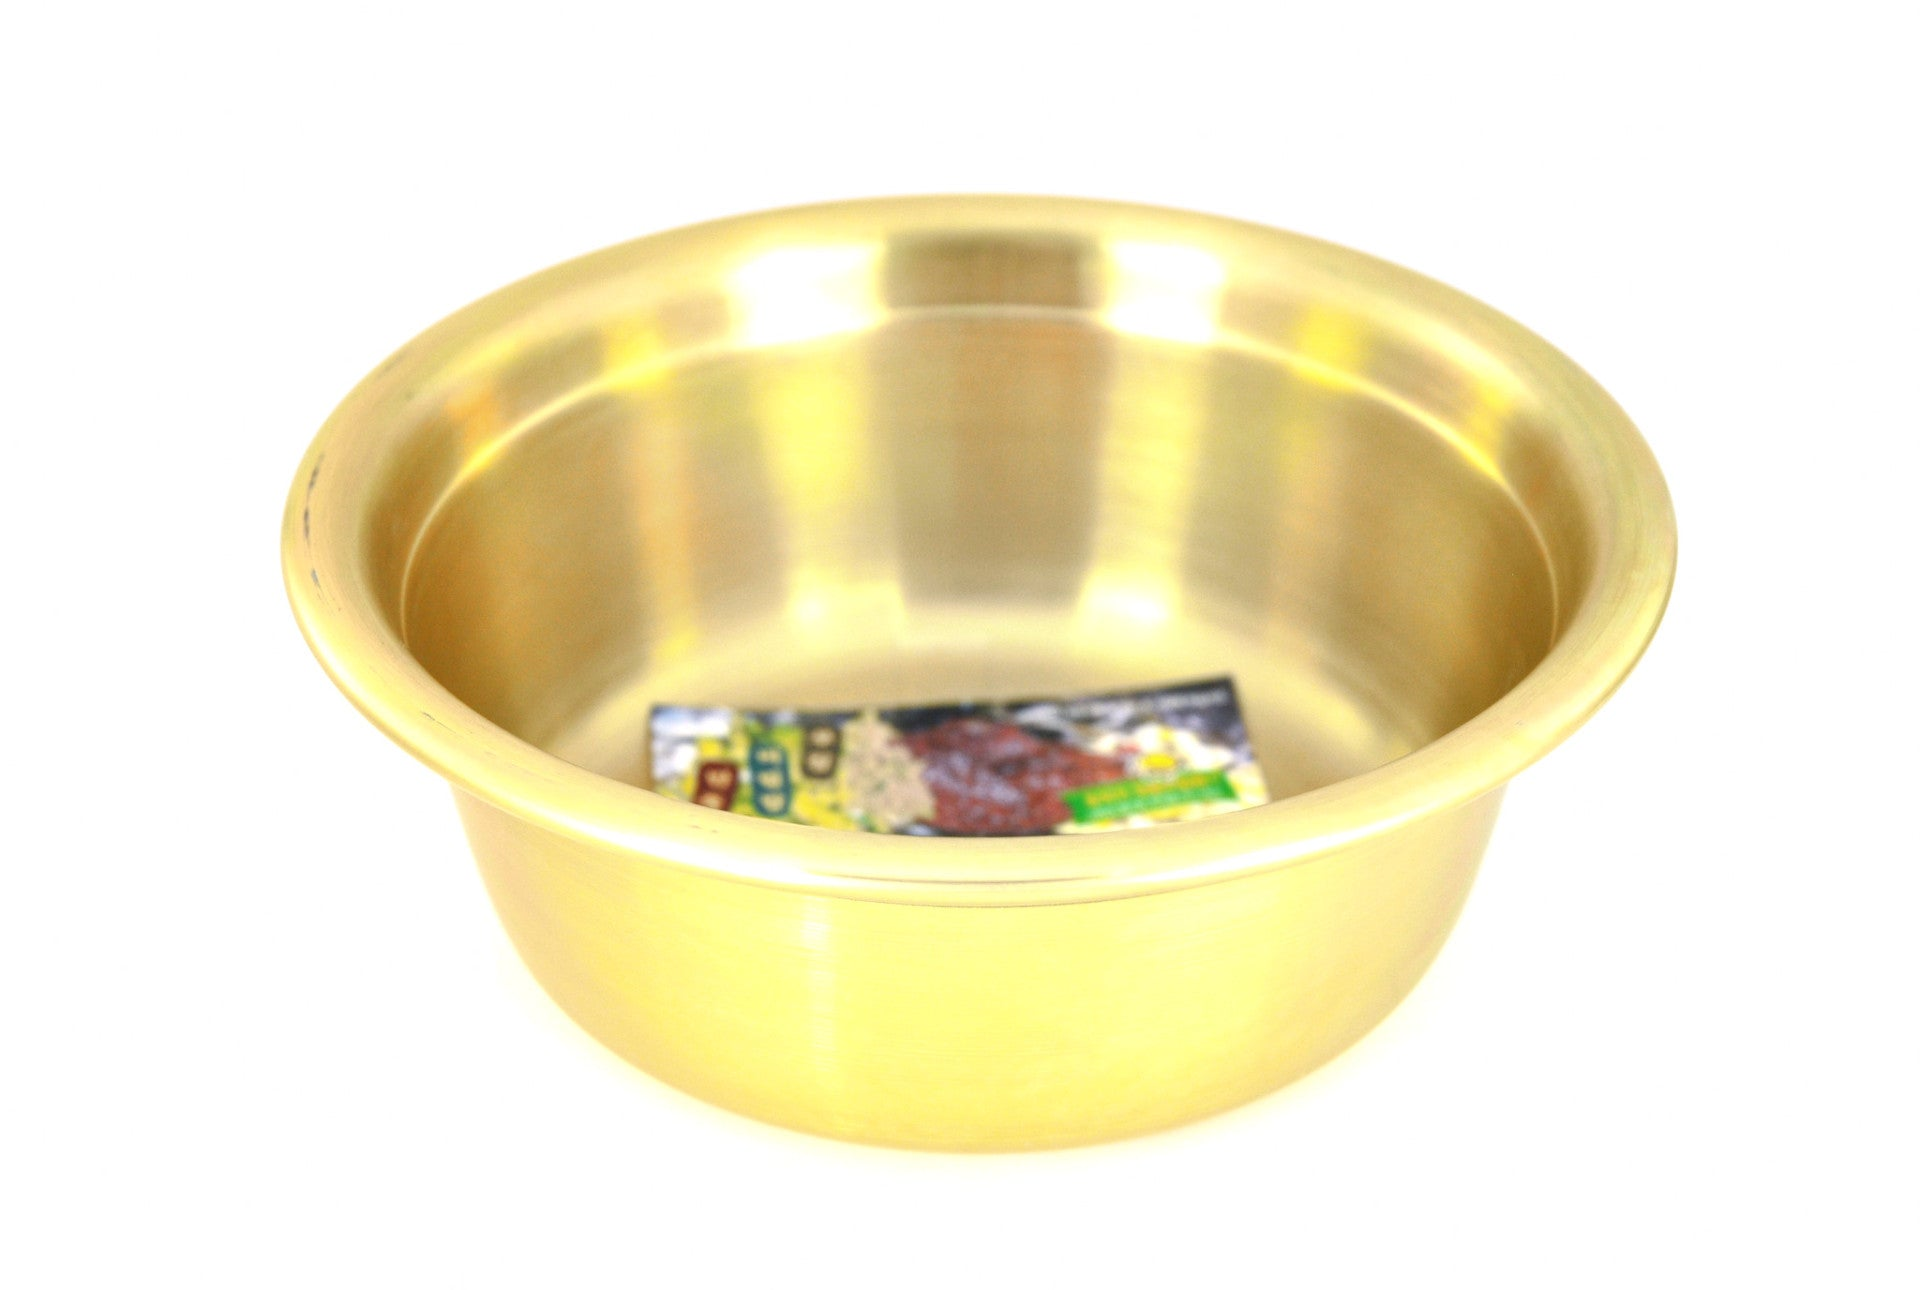 Nickel Plated Yellow Aluminum Korean Bowl 양푼이 (Case), Aluminum - eKitchenary